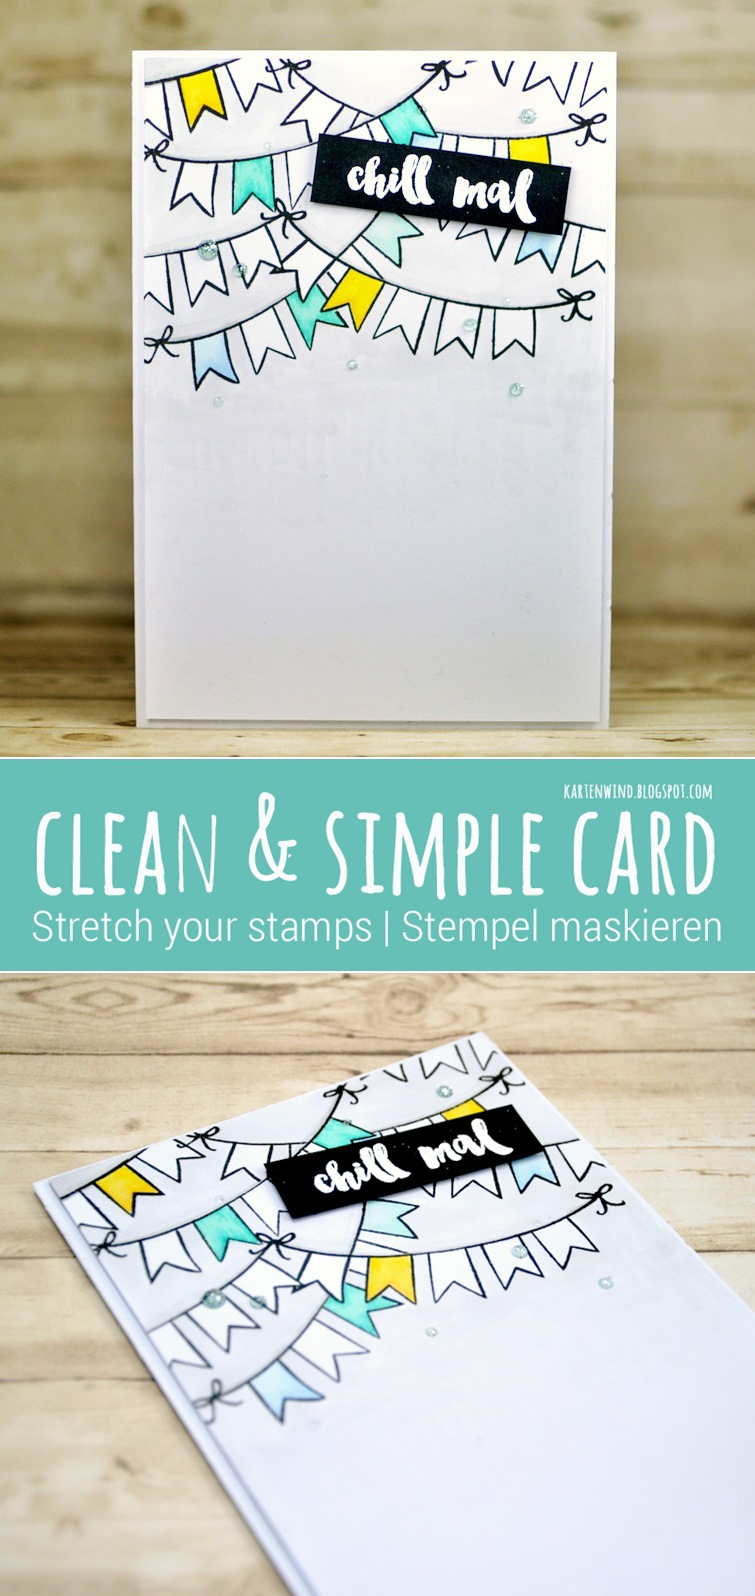 https://kartenwind.blogspot.com/2017/08/stretch-your-stamps-stempel-maskieren.html